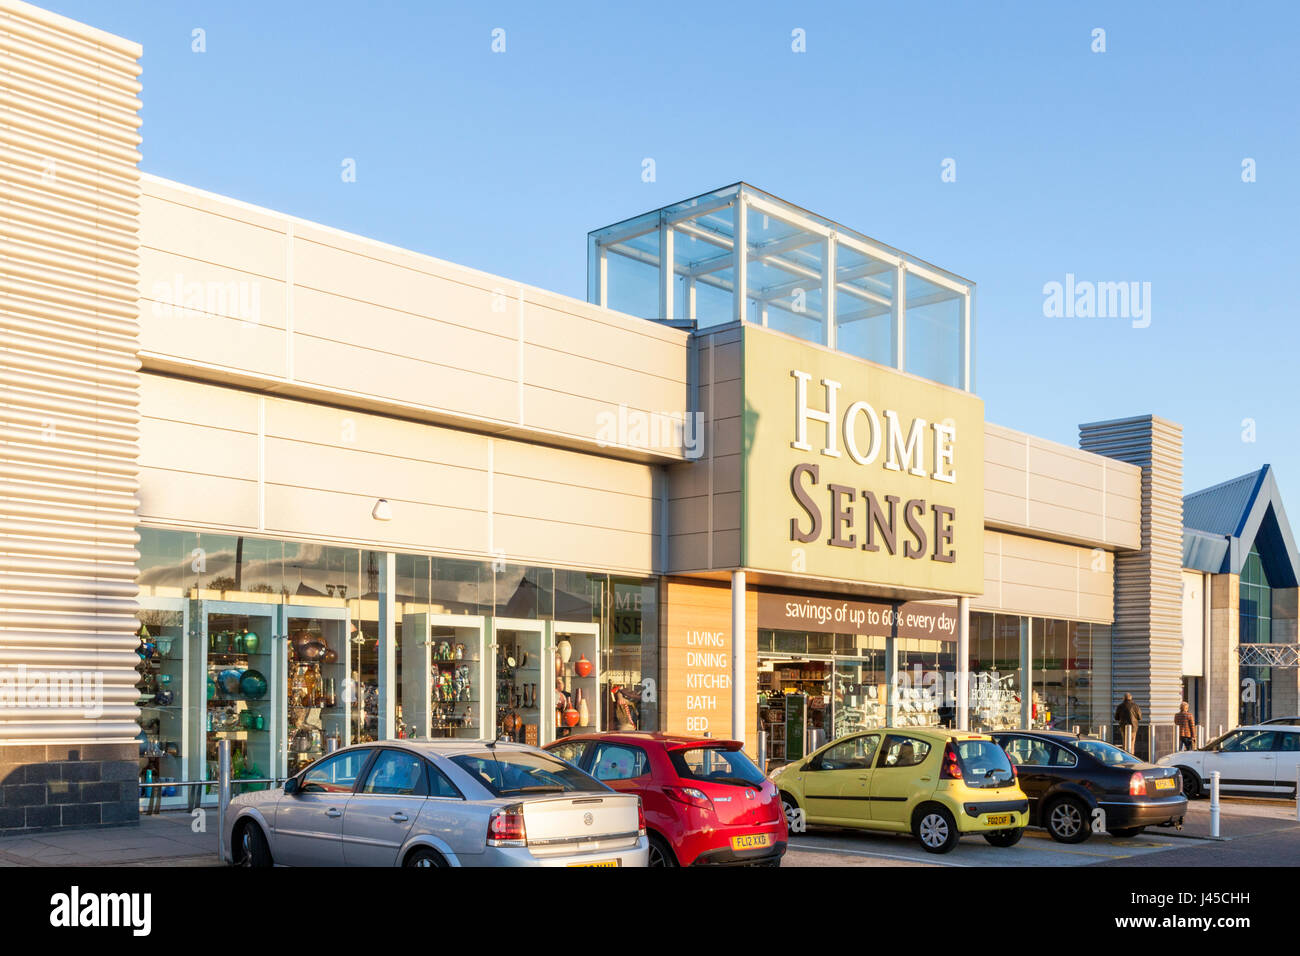 Home Sense, Castle Marina Retail Park, Nottingham, England, UK - Stock Image